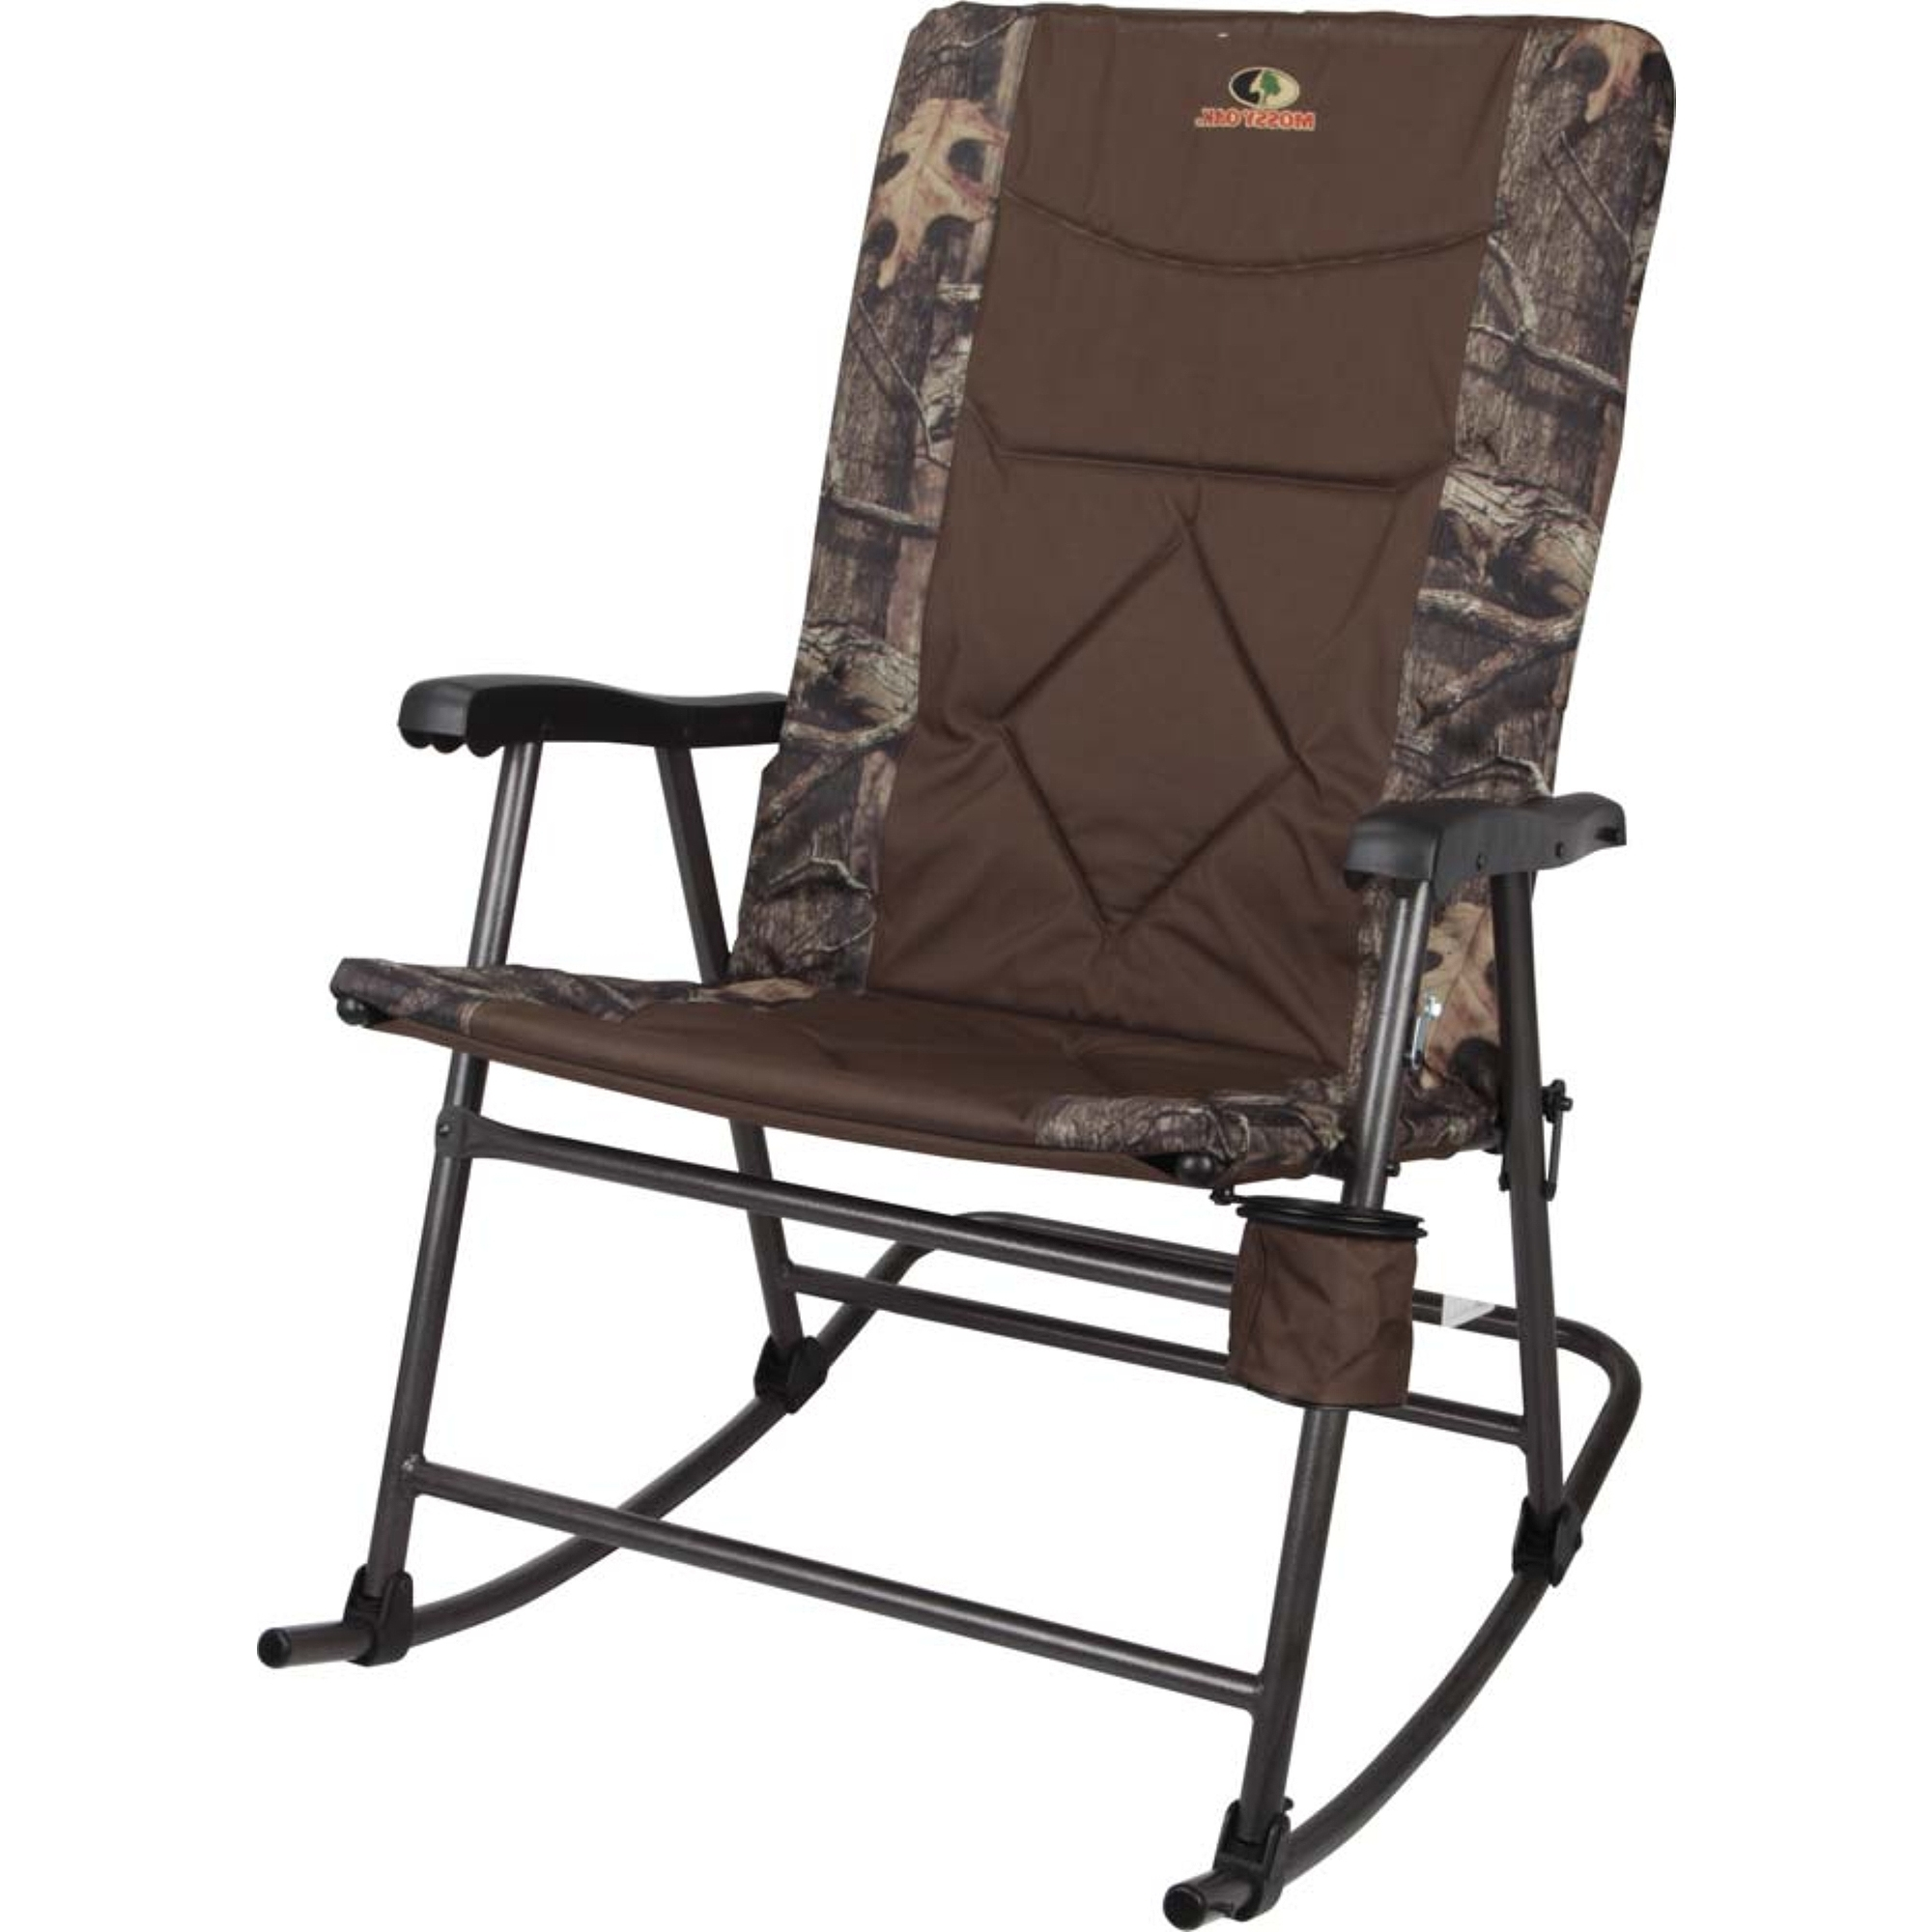 Newest Gliding Rocking Chair Walmart F38X About Remodel Perfect Home Regarding Walmart Rocking Chairs (View 7 of 15)